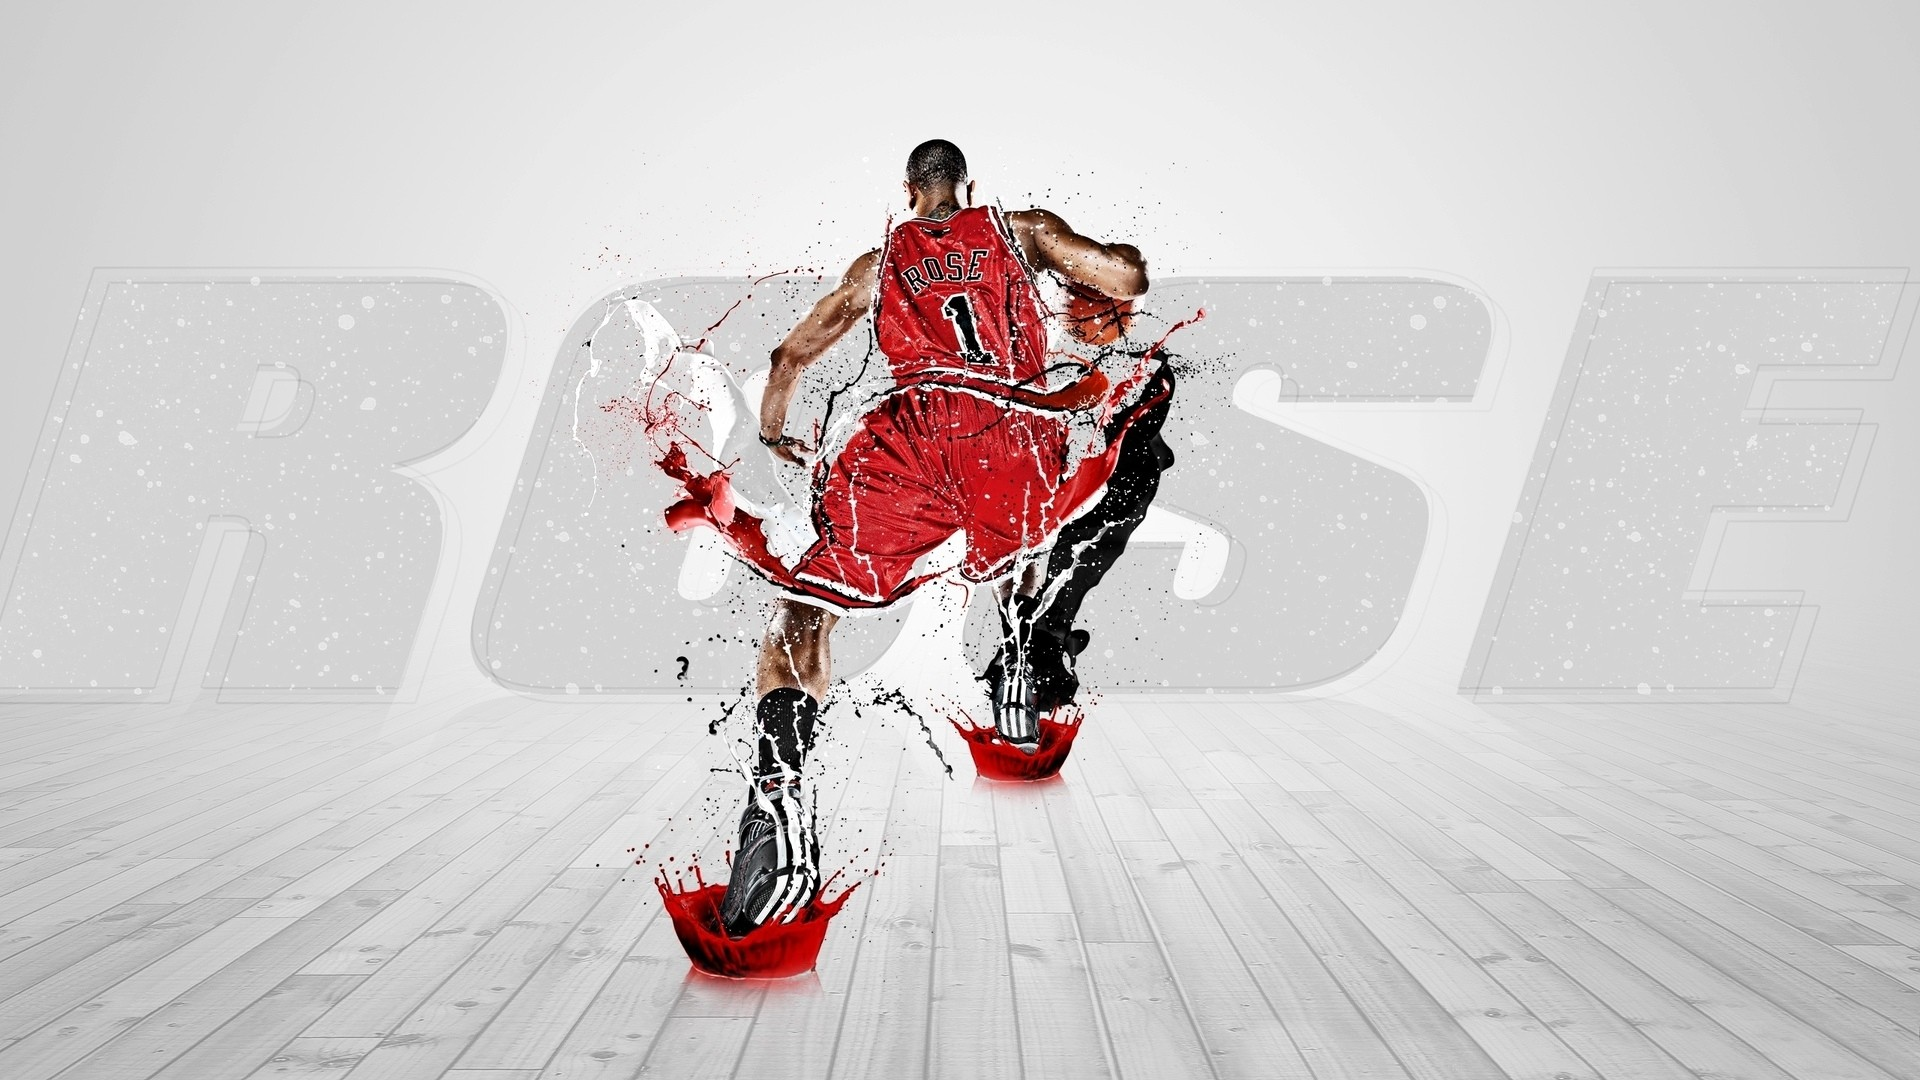 Derrick Rose Wallpaper and Background